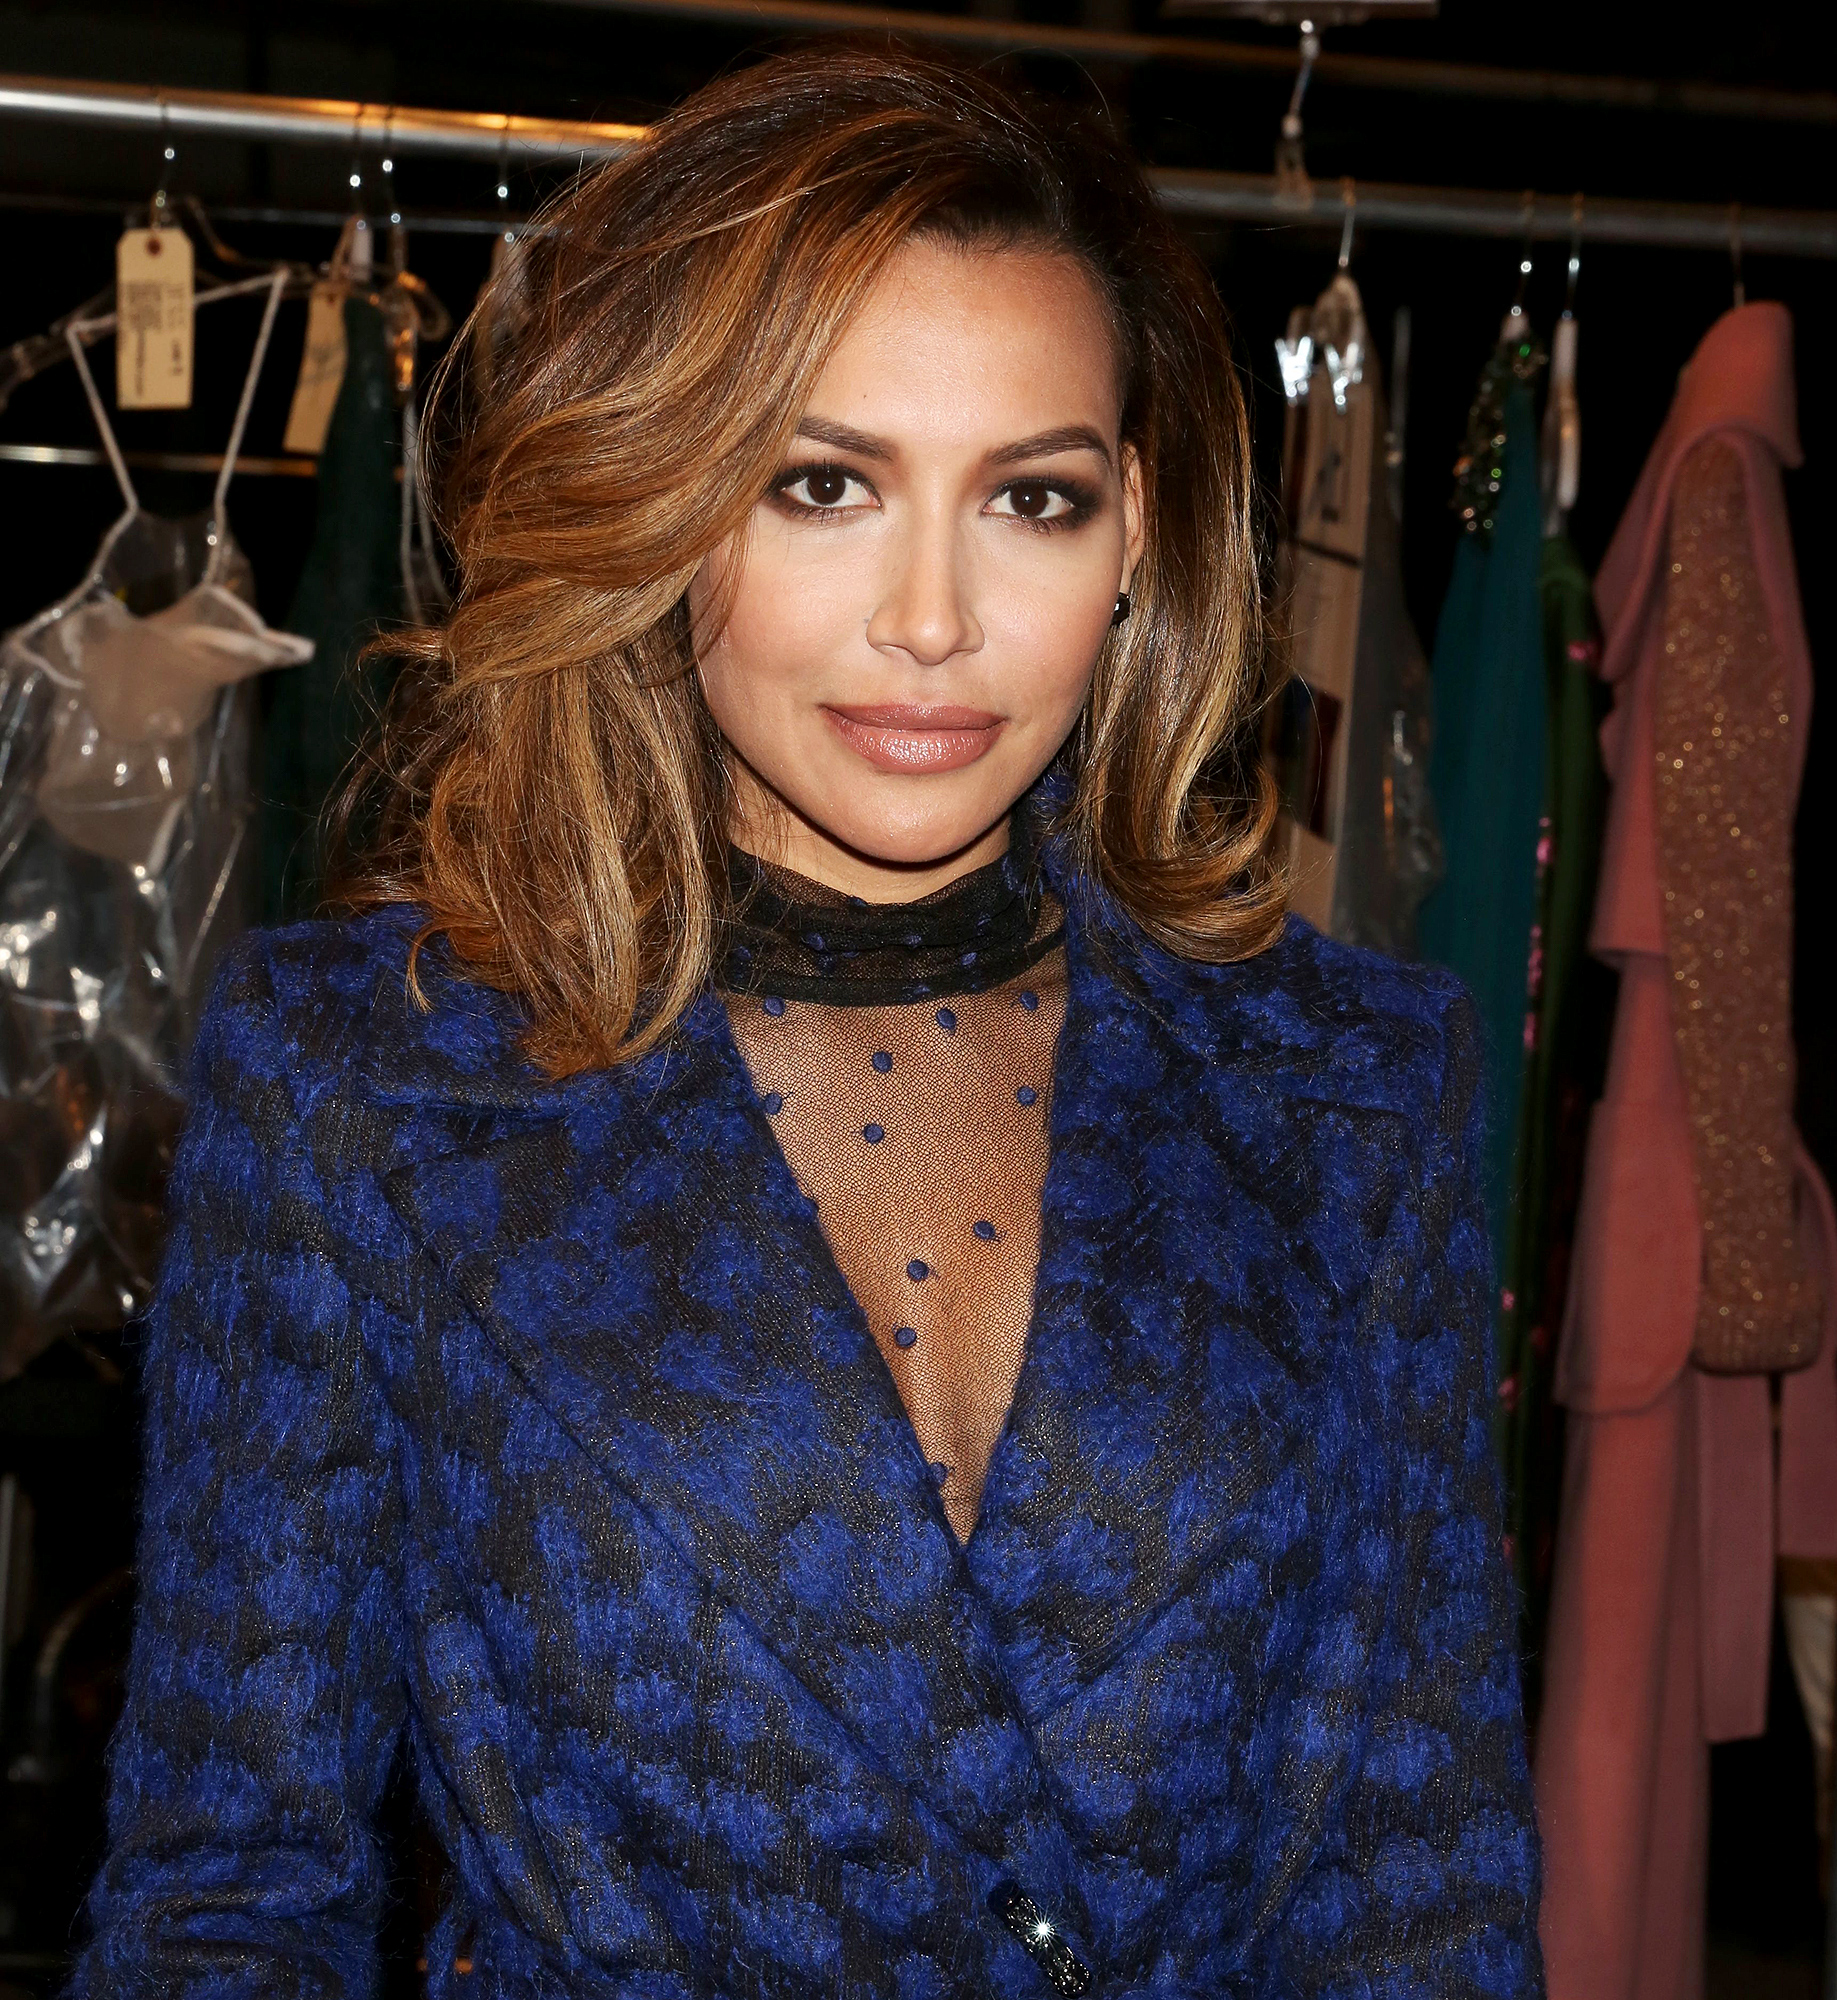 Naya Rivera Death Authorities Found No Indication of Foul Play or Suicide